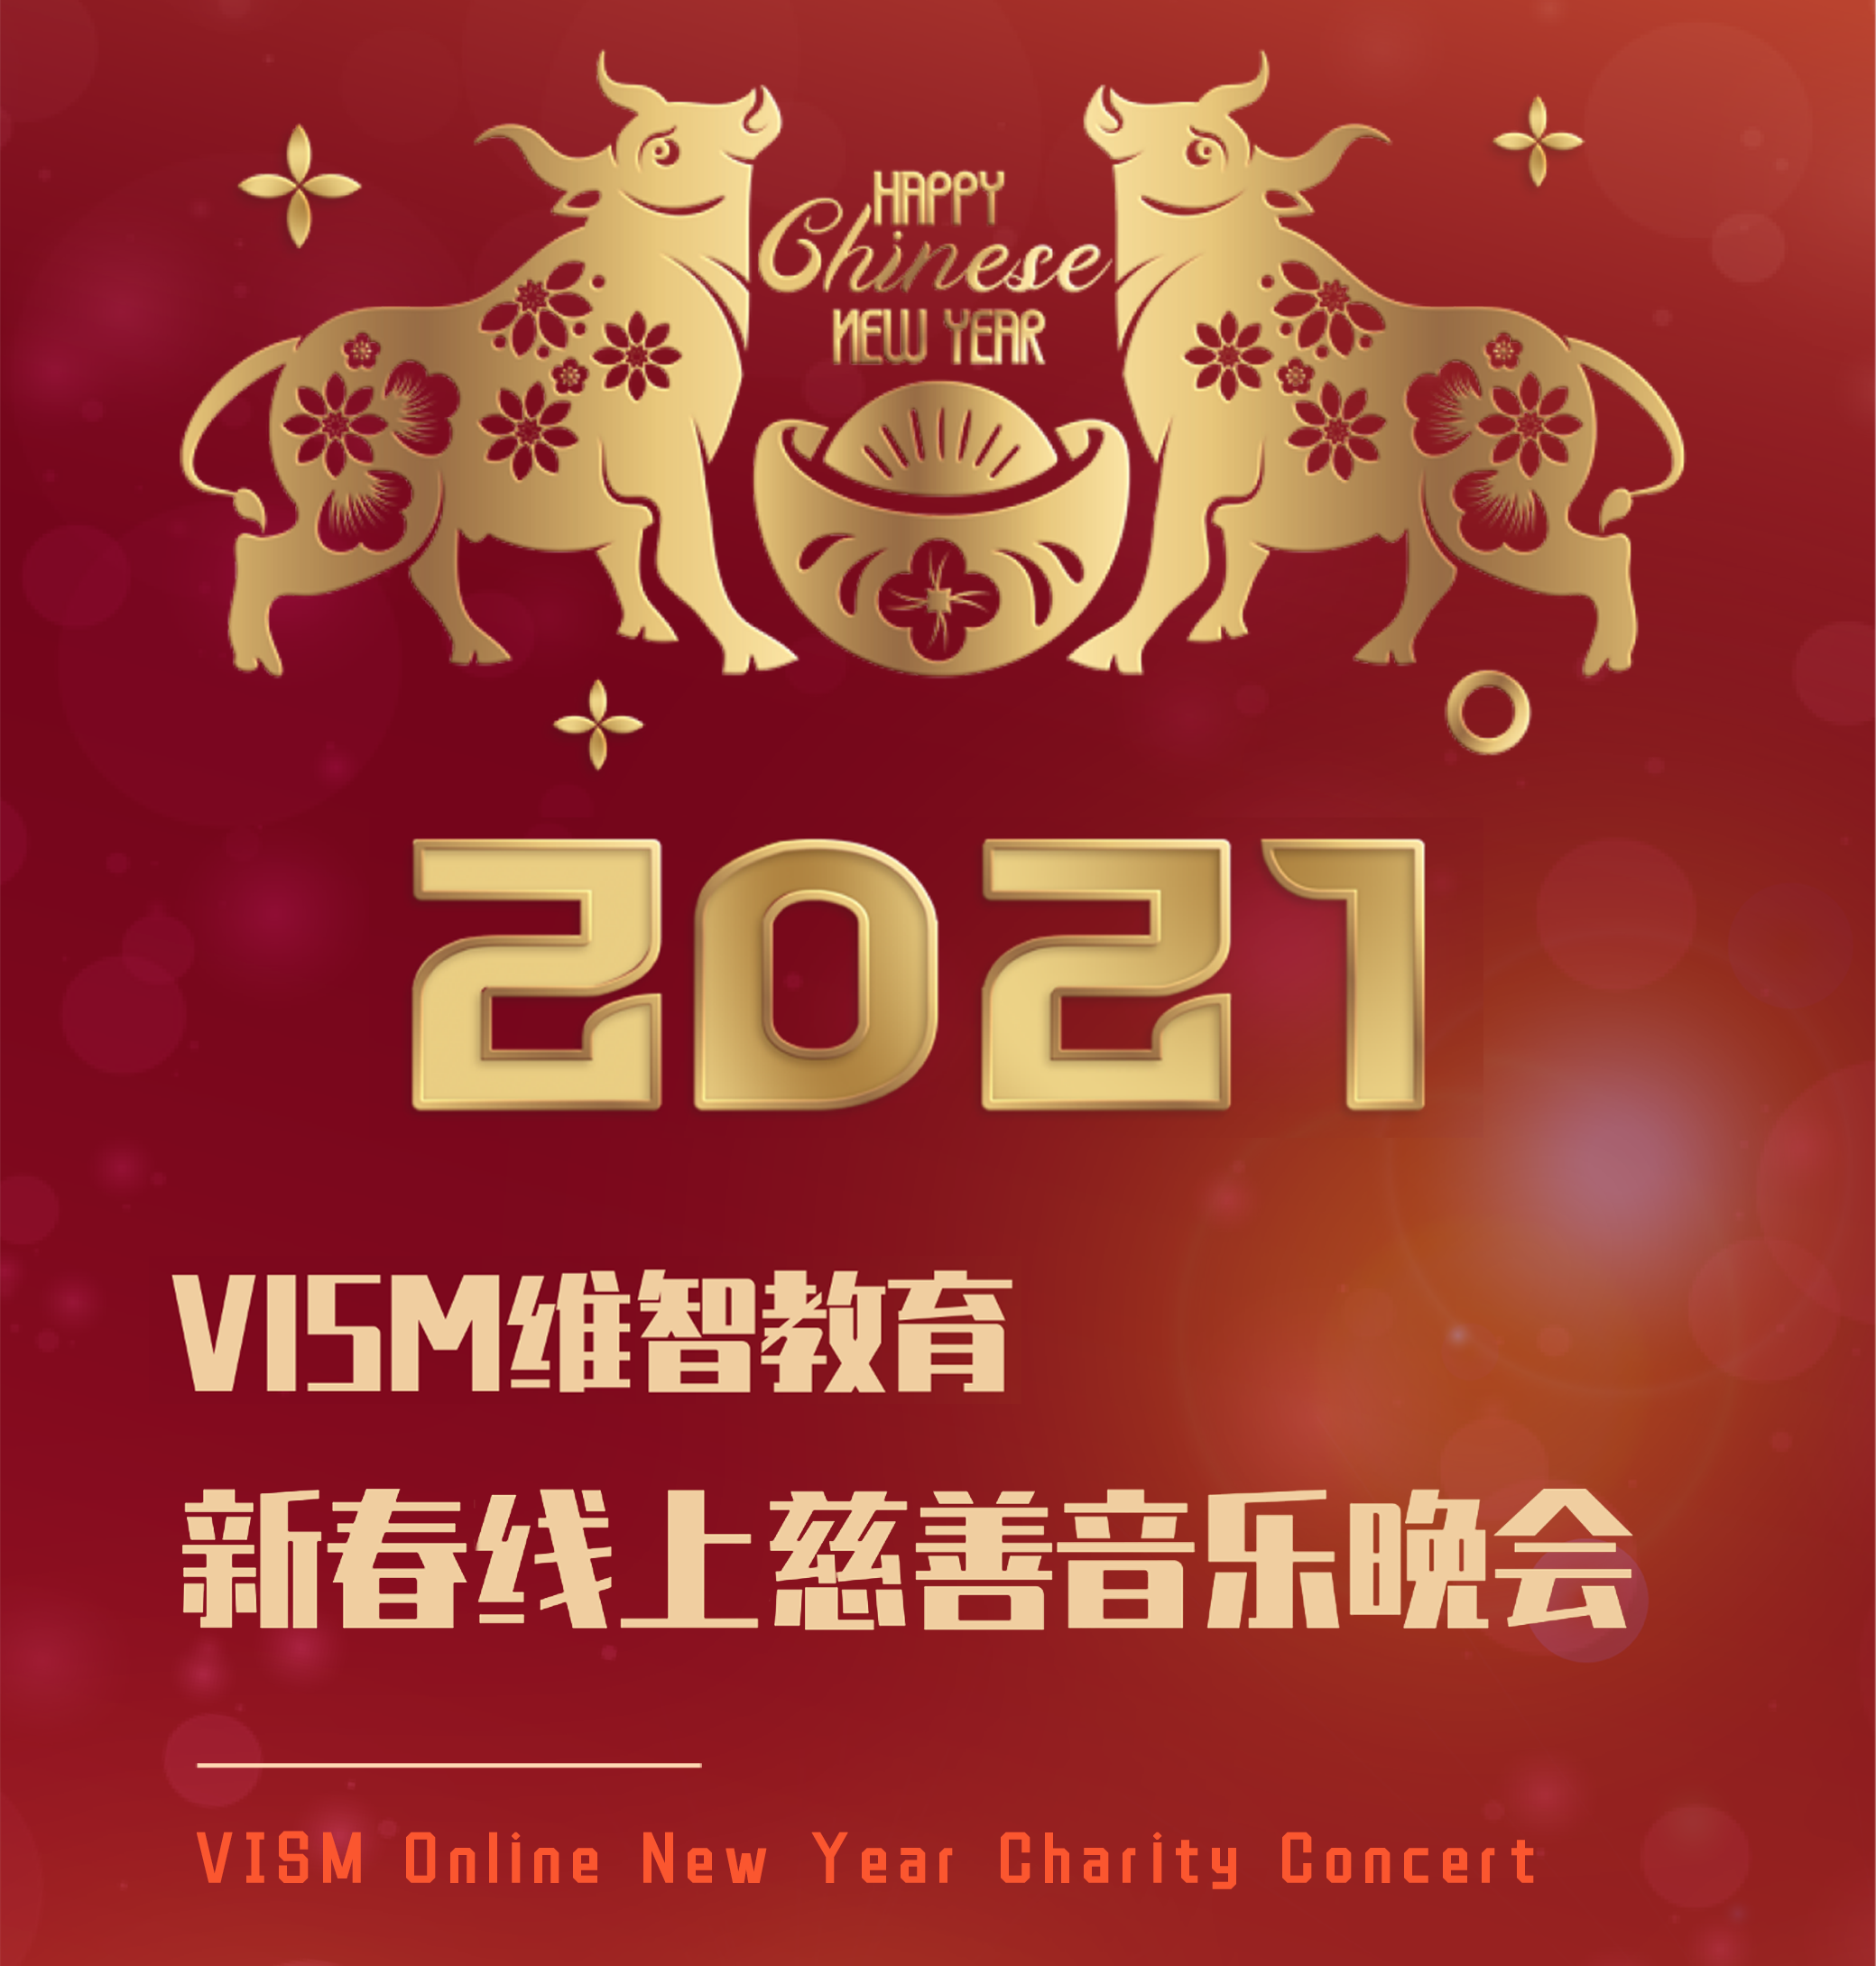 2021 VISM Online New Year Charity Concert